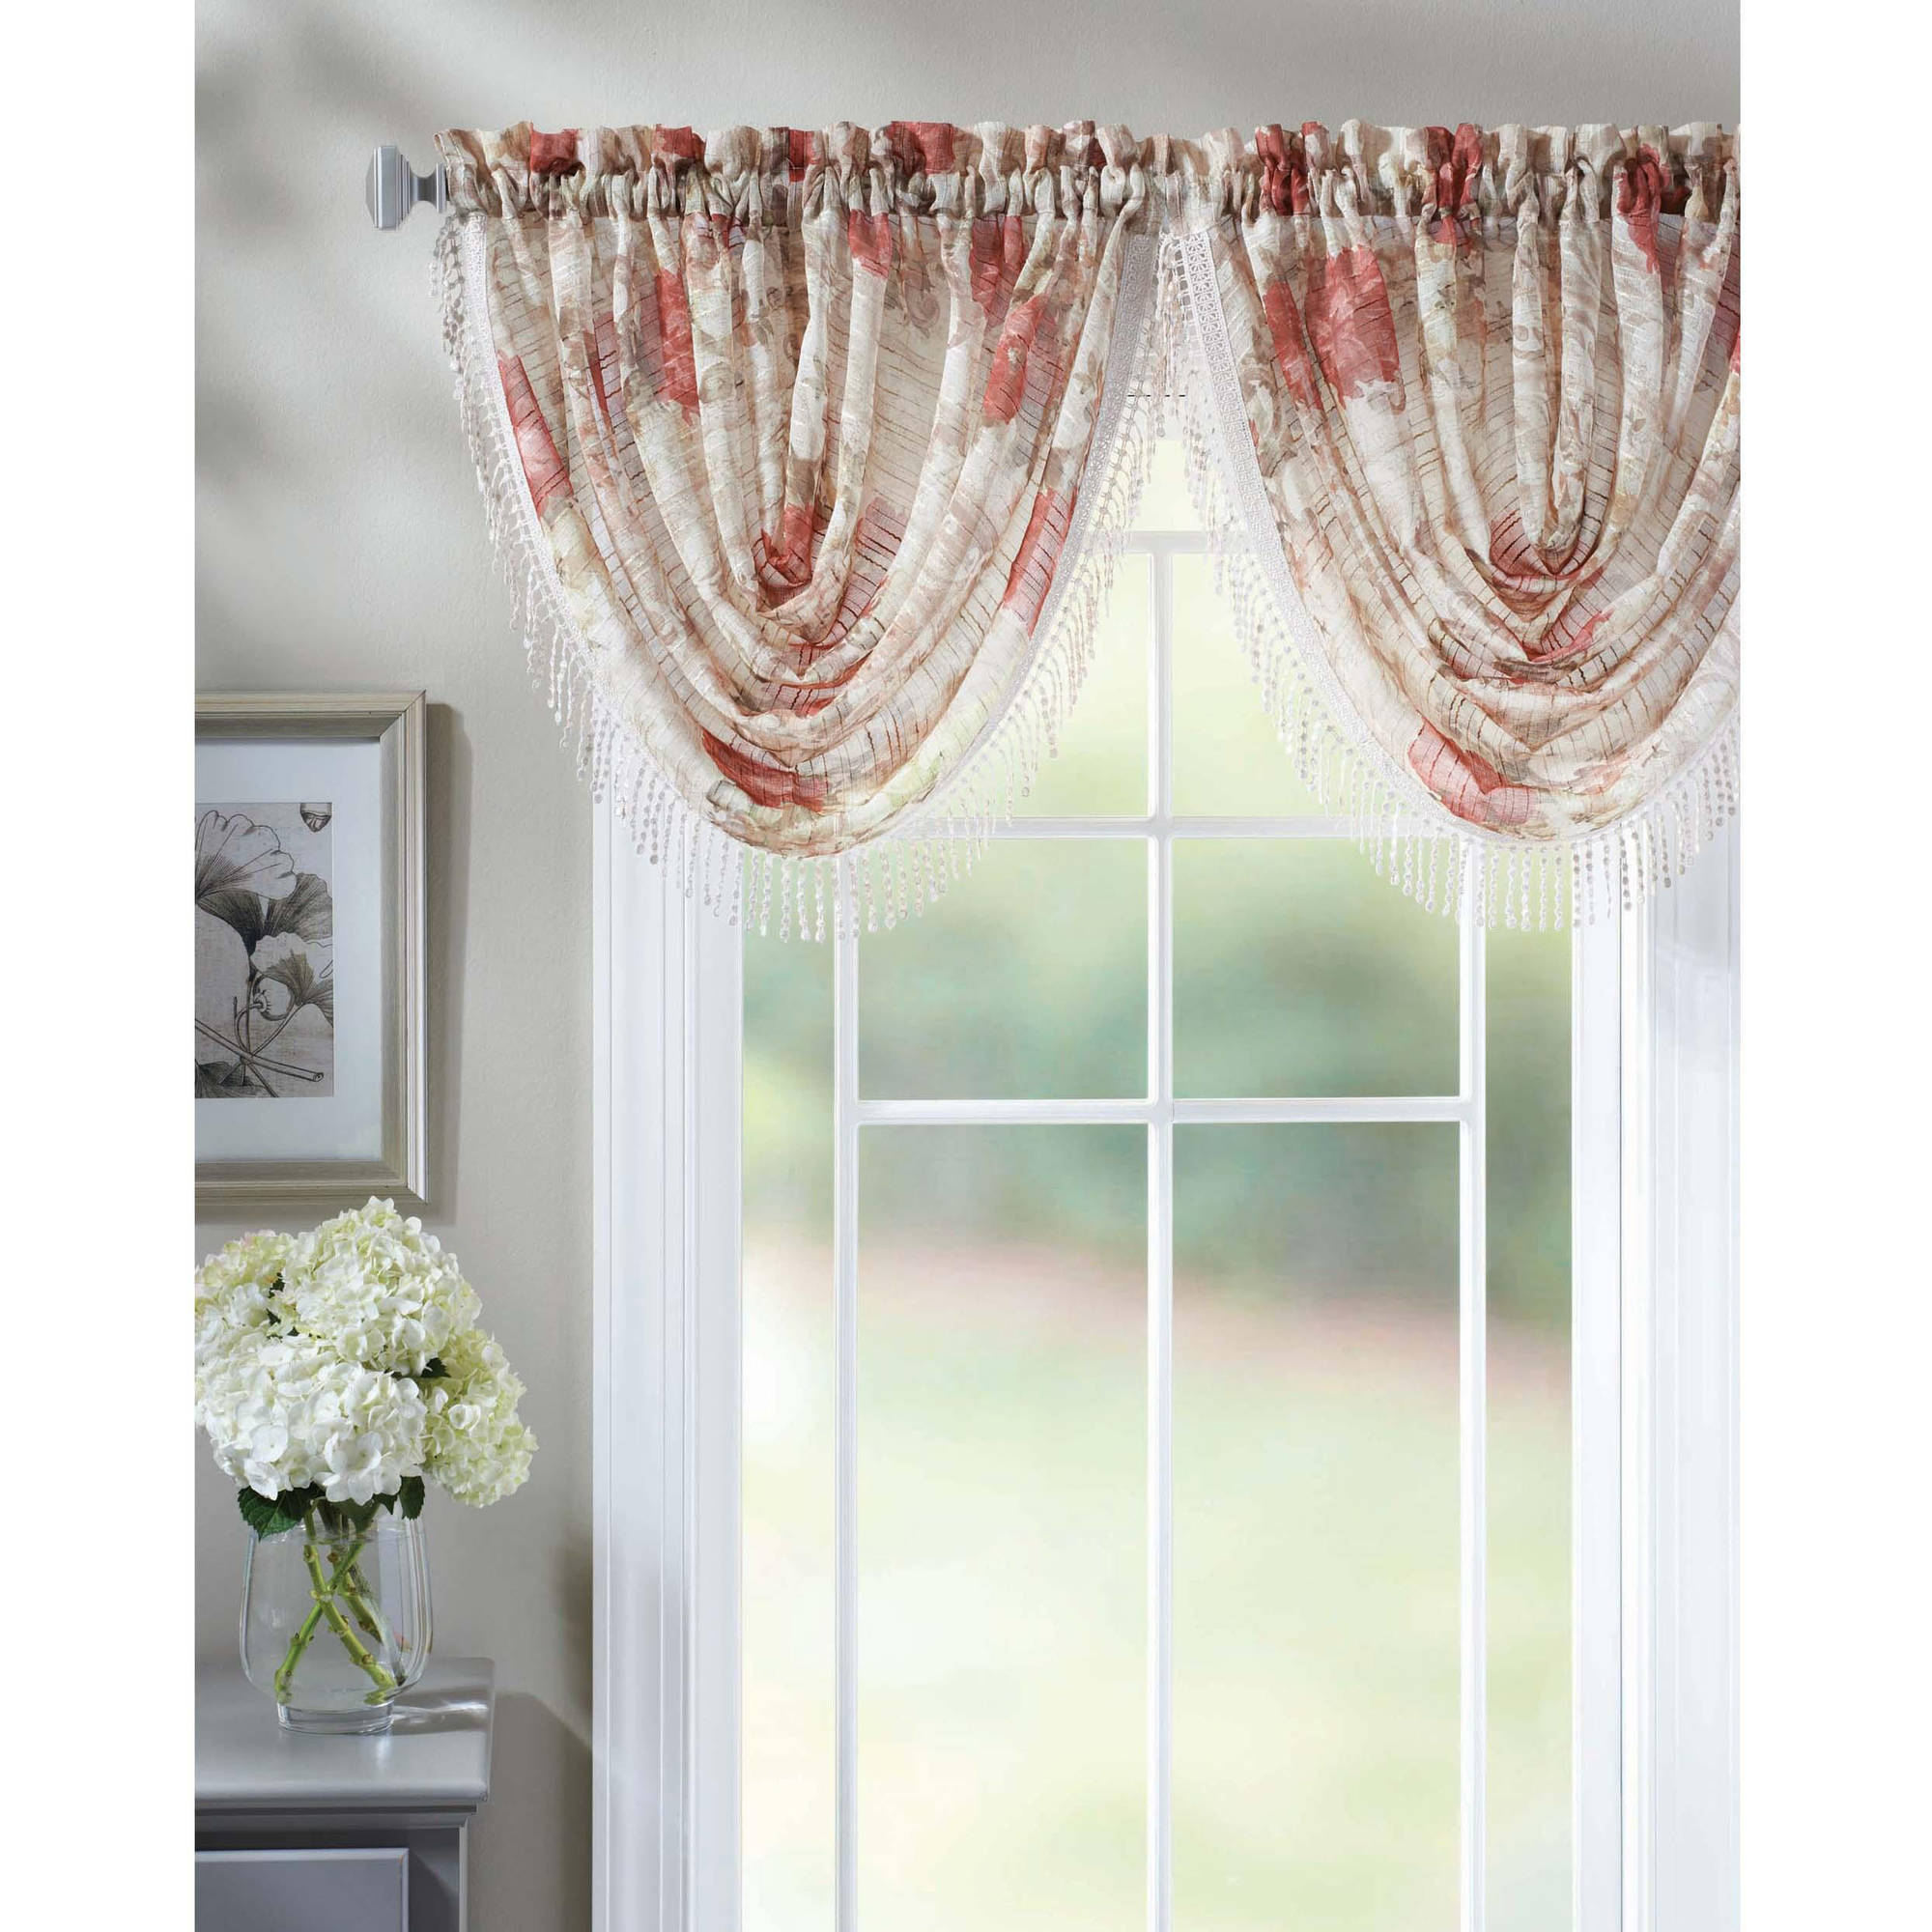 Better Homes and Gardens Roses Waterfall Valance by